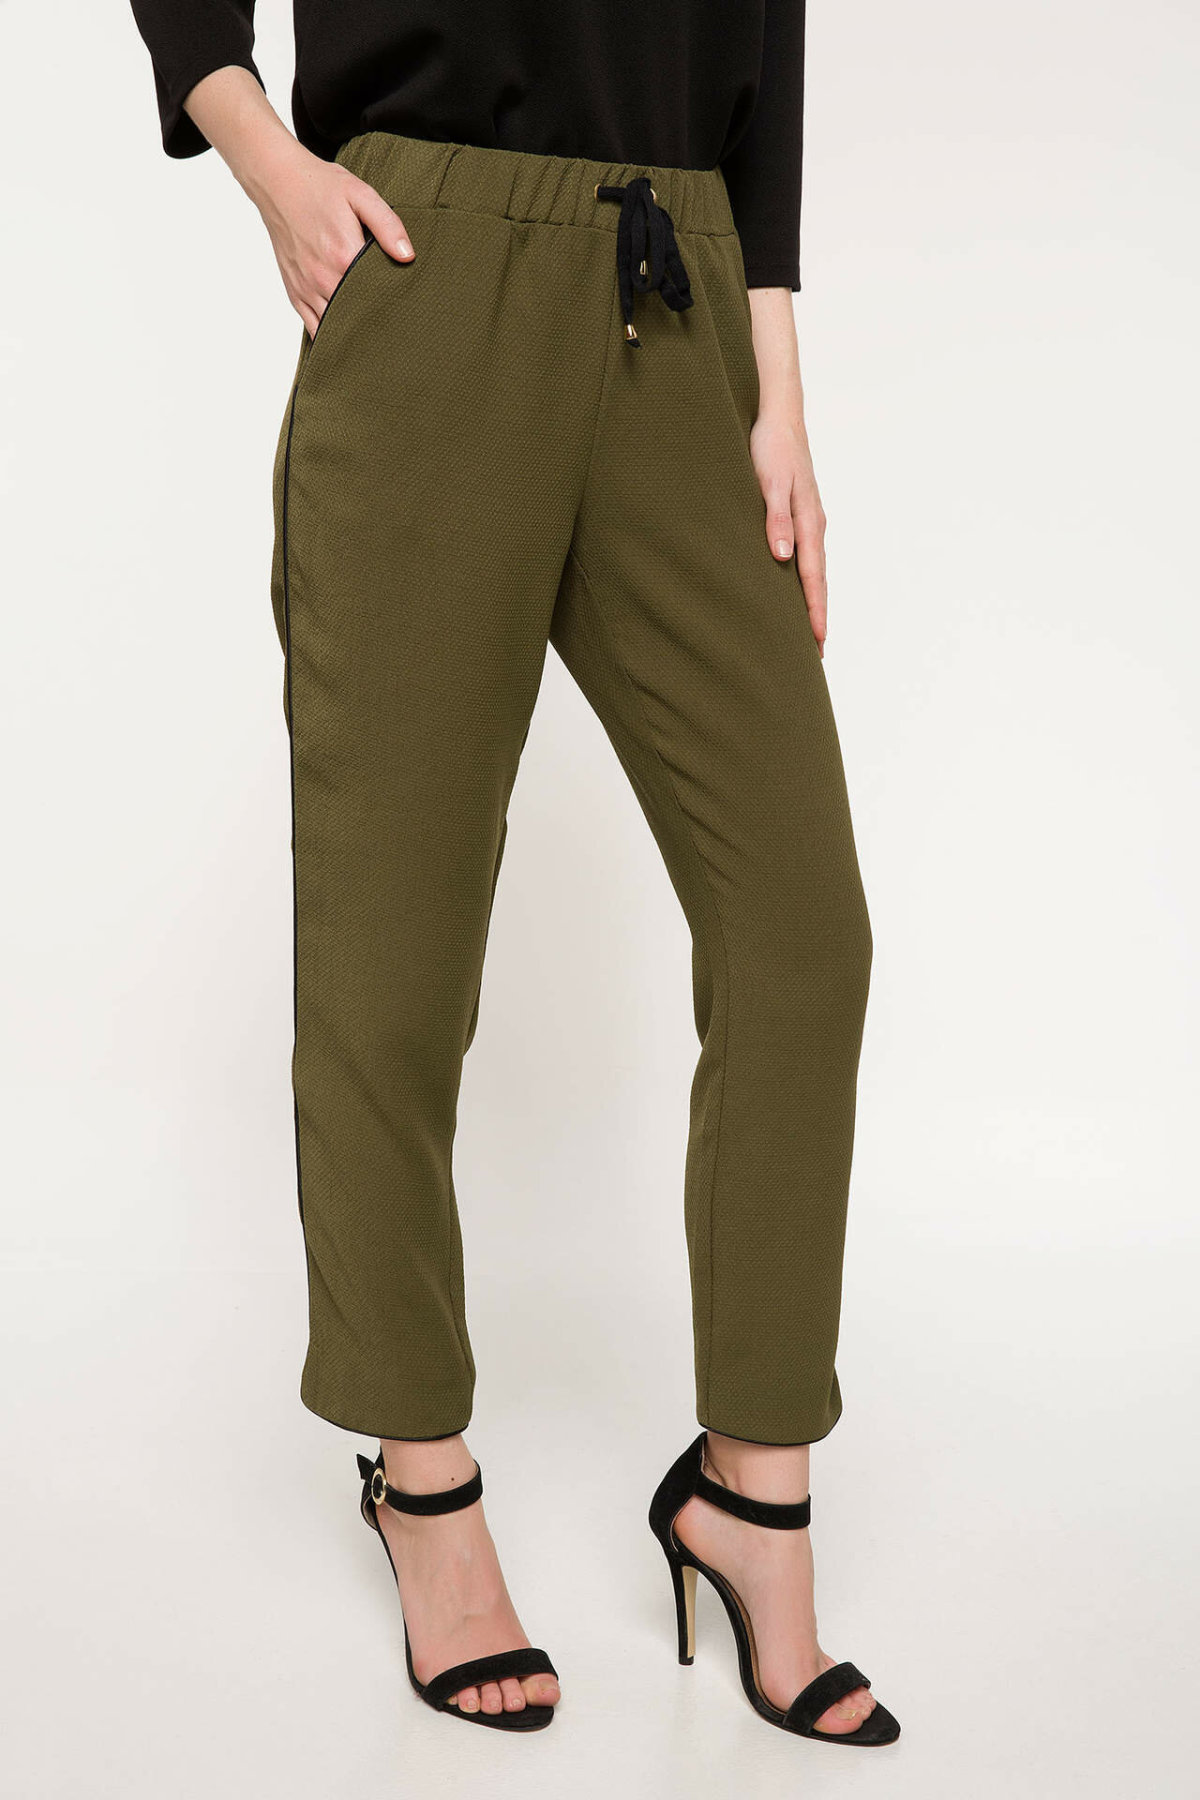 DeFacto Female Fashion Trousers Ladies Casual Drawstring Pants Comfort Straight Comfort Long Pants Army Green - J1717AZ18SM